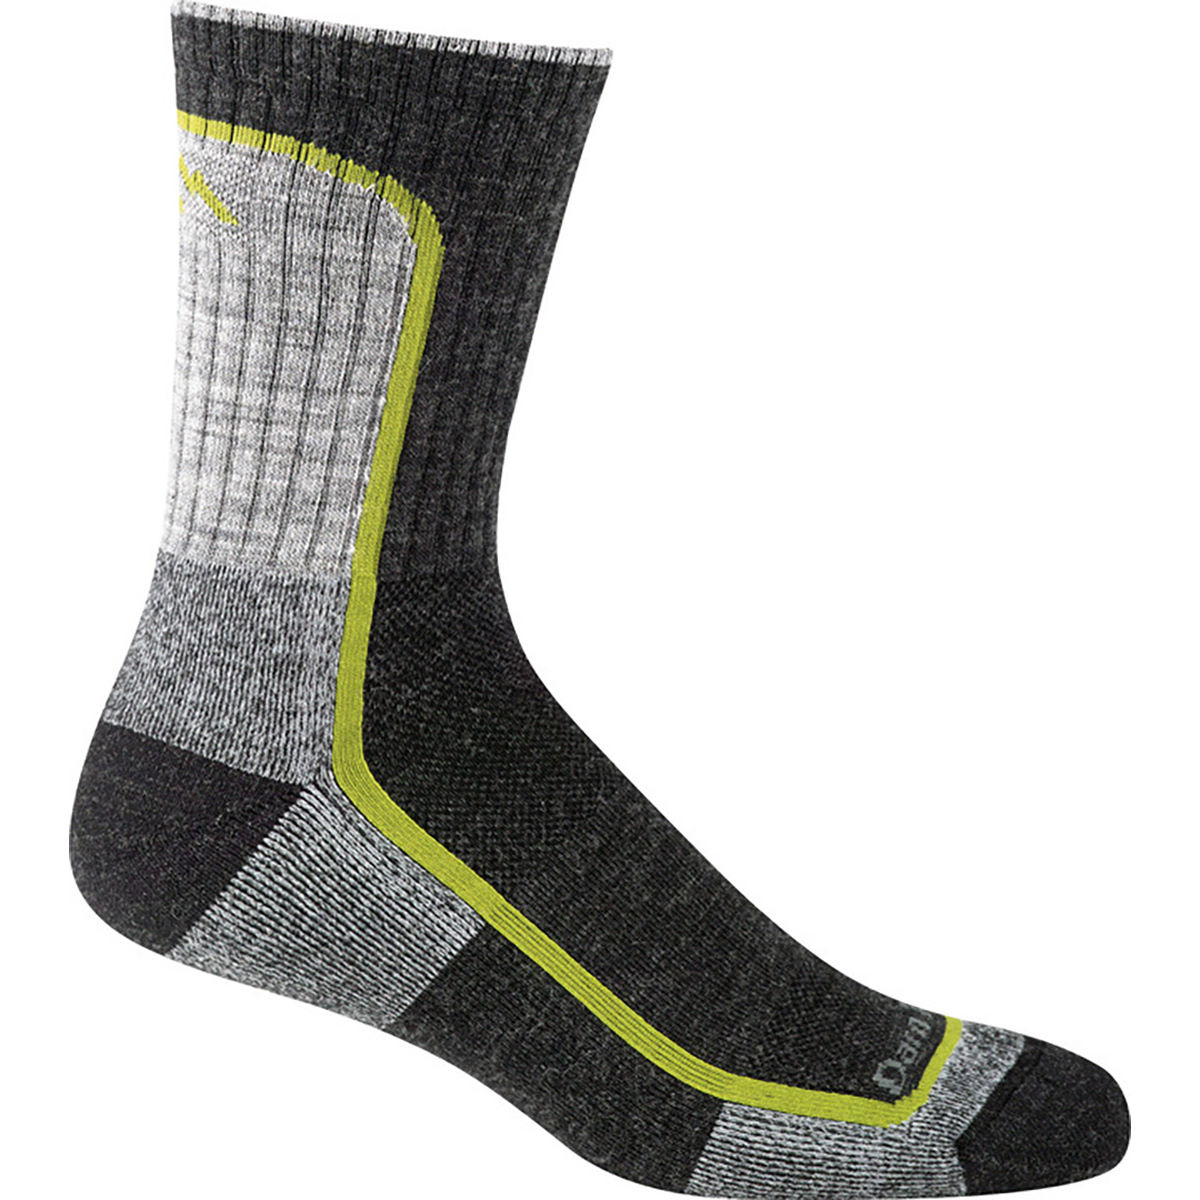 Darn Tough Darn Tough Light Hiker Crew Cushion Socks   Socks